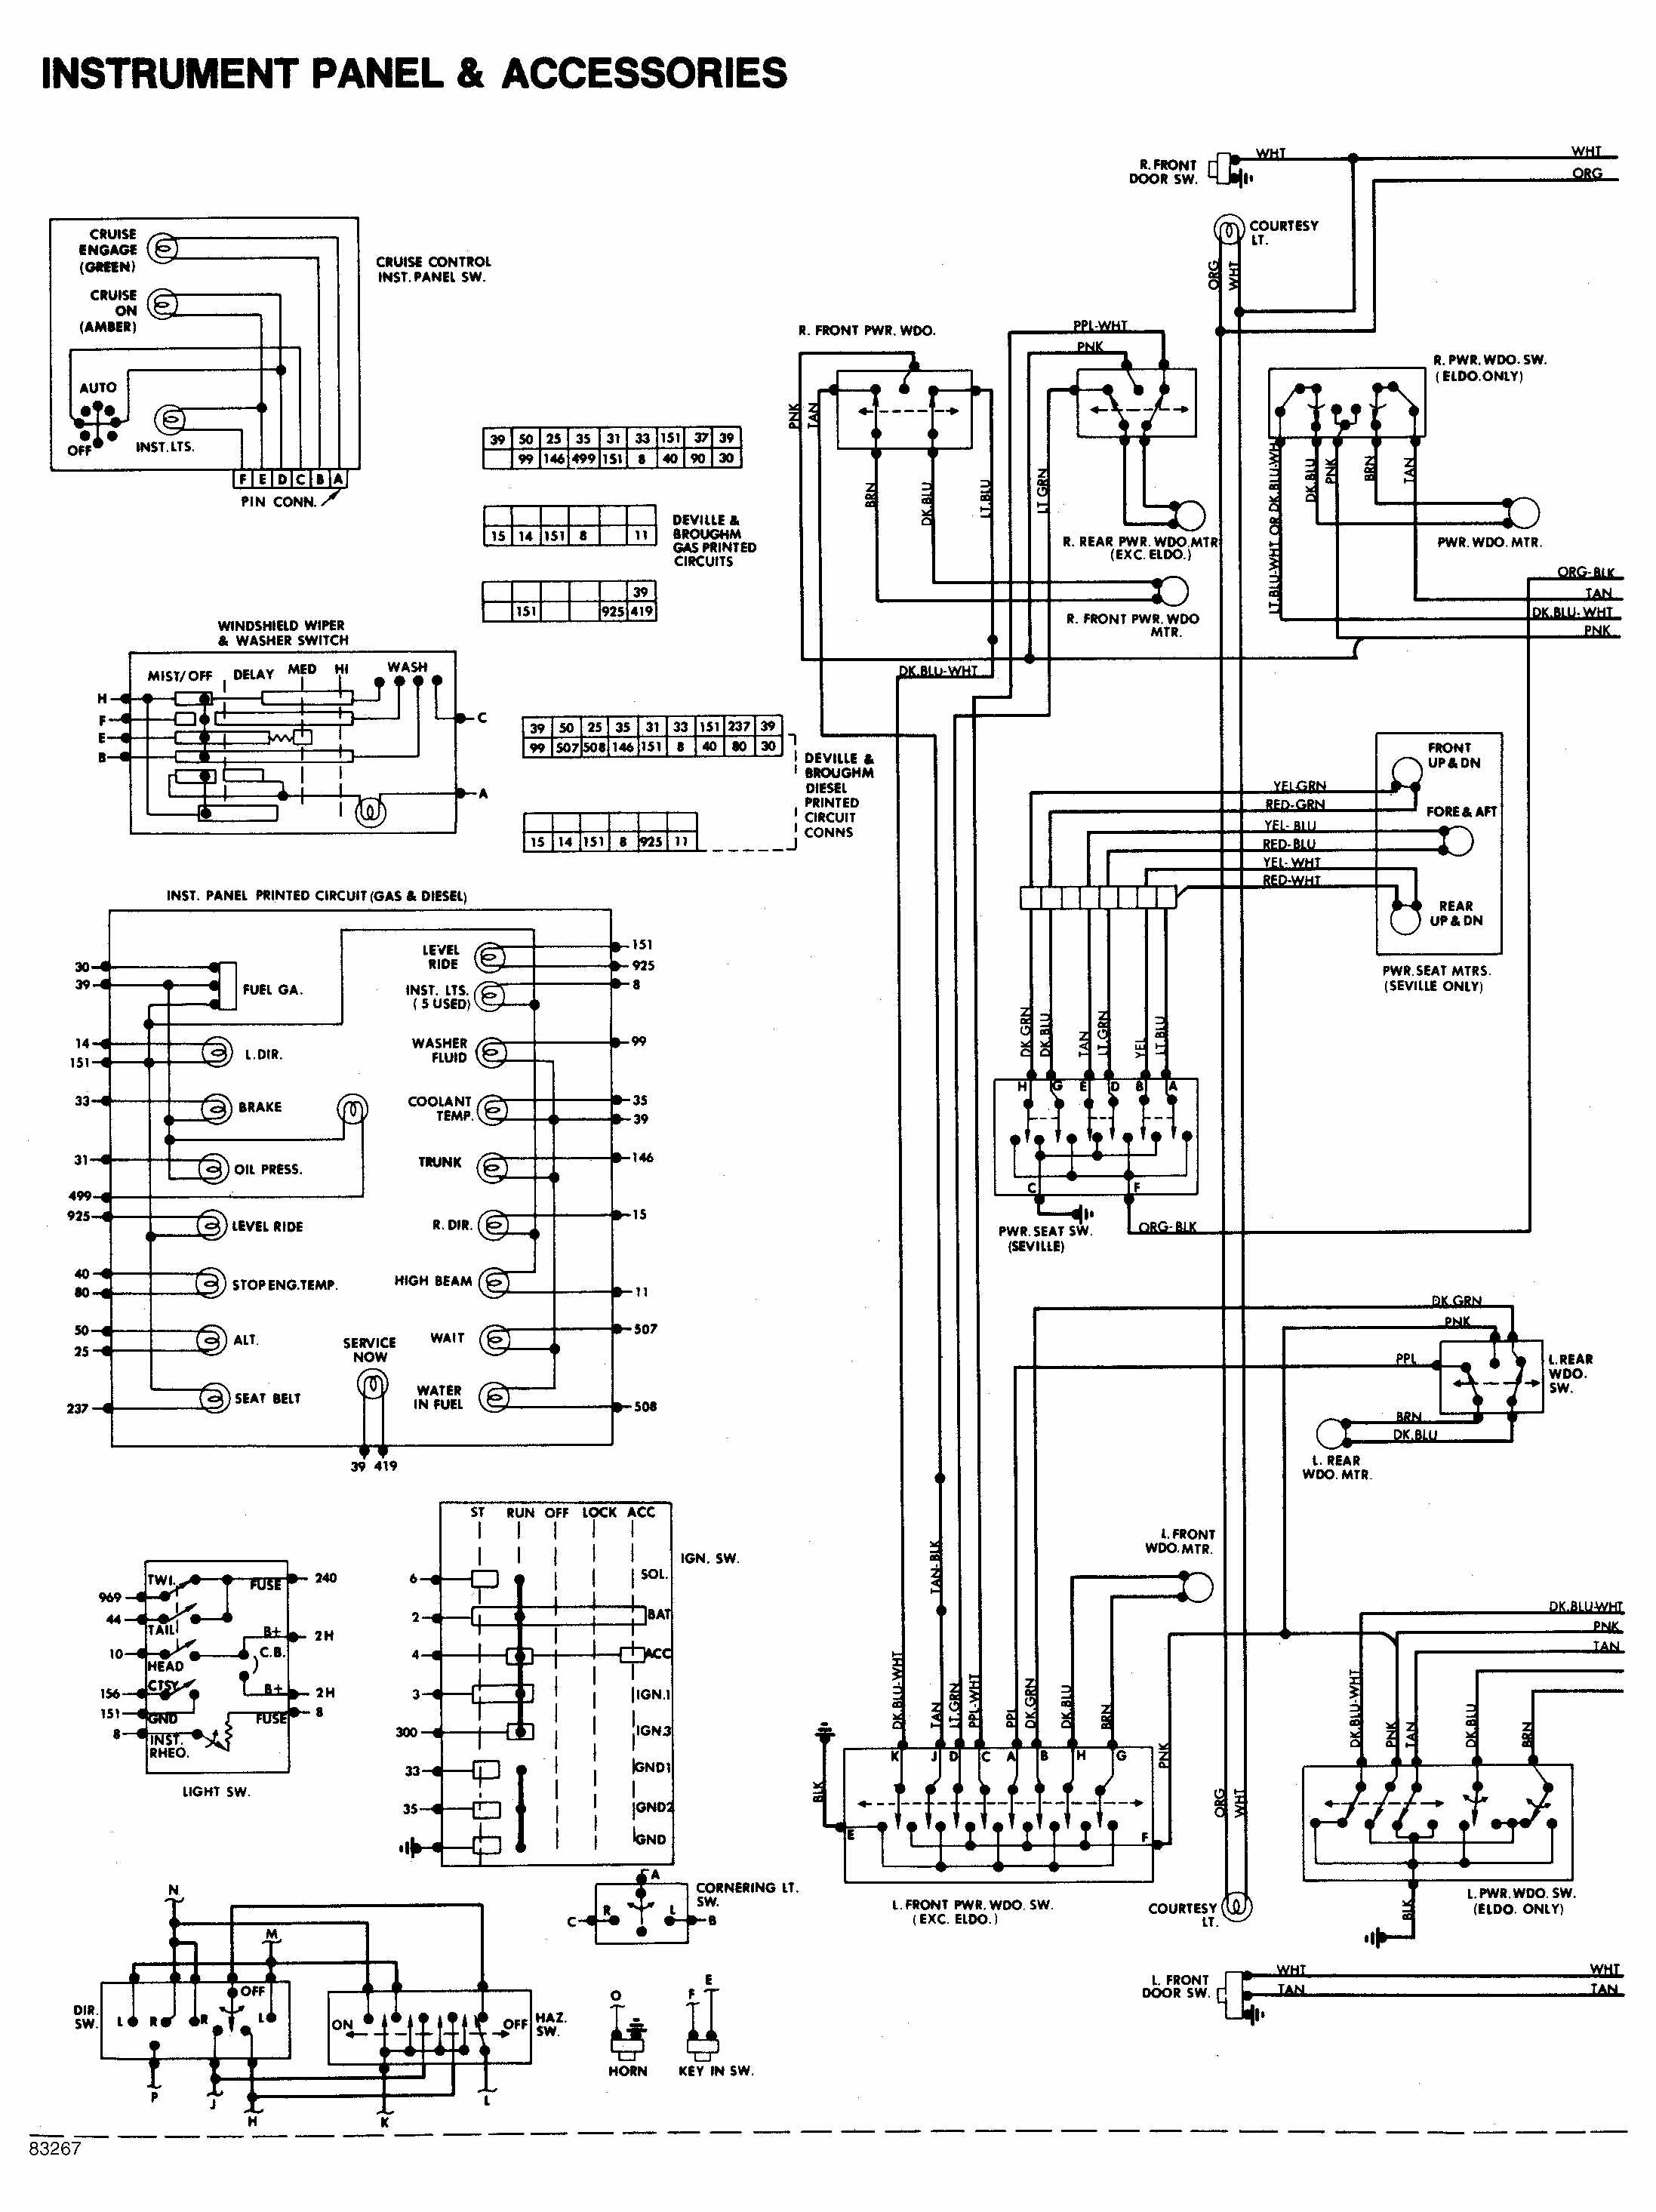 instrument panel and accessories wiring diagram of 1984 cadillac deville gm wiring diagrams 95 98 gm truck wiring diagrams \u2022 wiring 94 Ford Mustang Coupe Fuse Box at nearapp.co